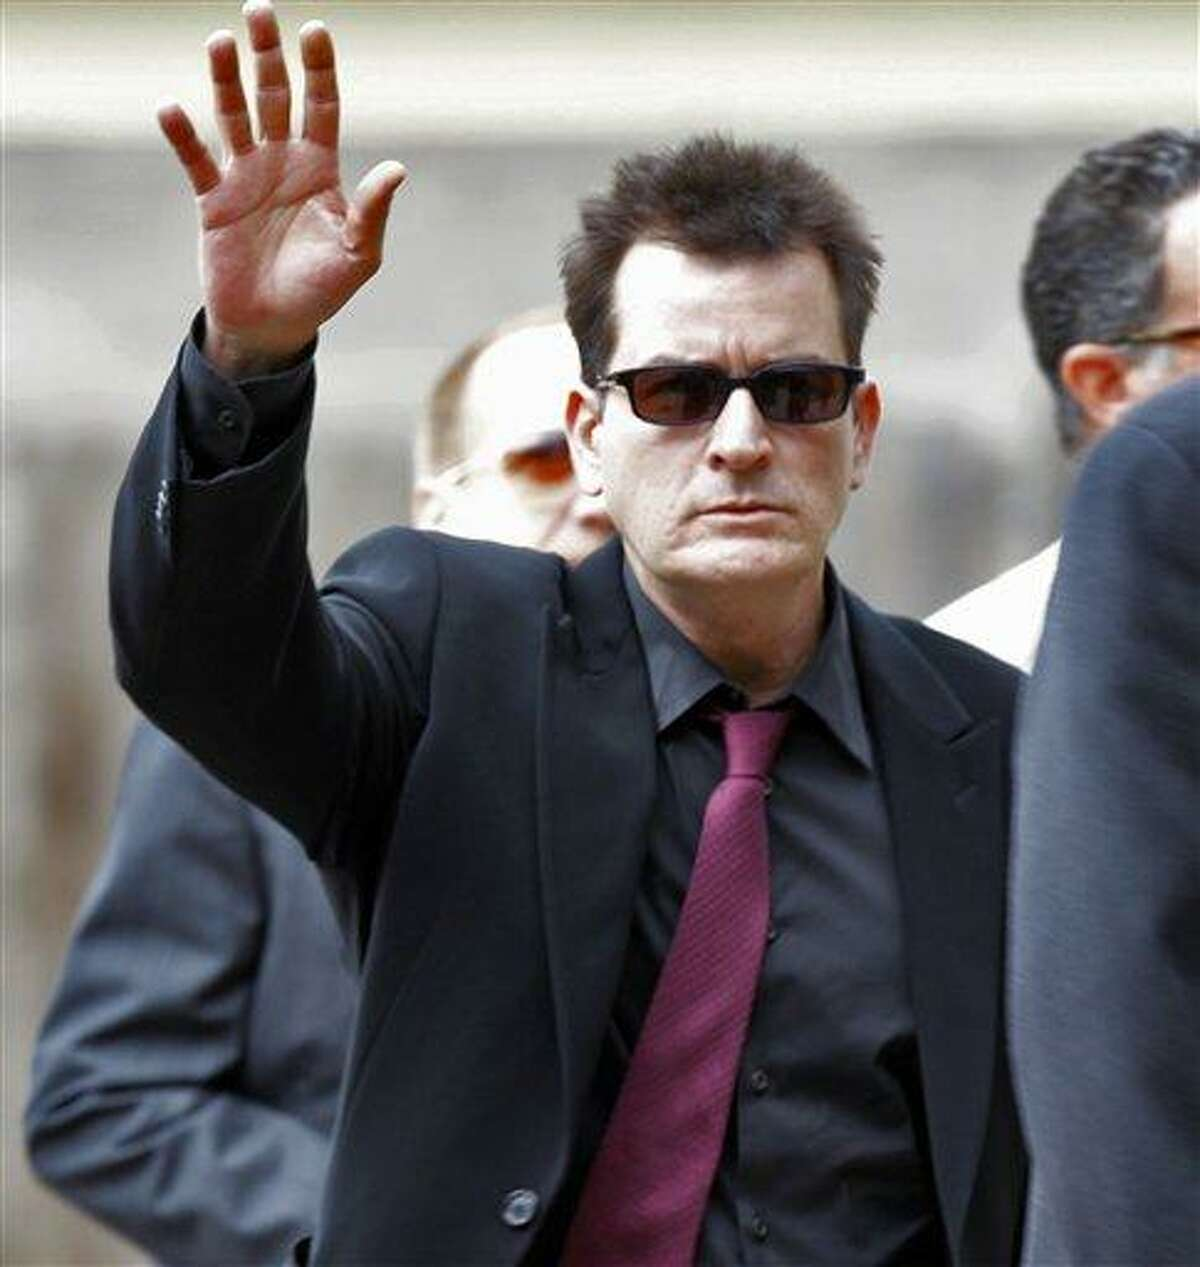 FILE - In a Aug. 2, 2010 file photo, Charlie Sheen waves as he arrives at the Pitkin County Courthouse in Aspen, Colo., for a hearing in his domestic abuse case. (AP Photo/Ed Andrieski, File)